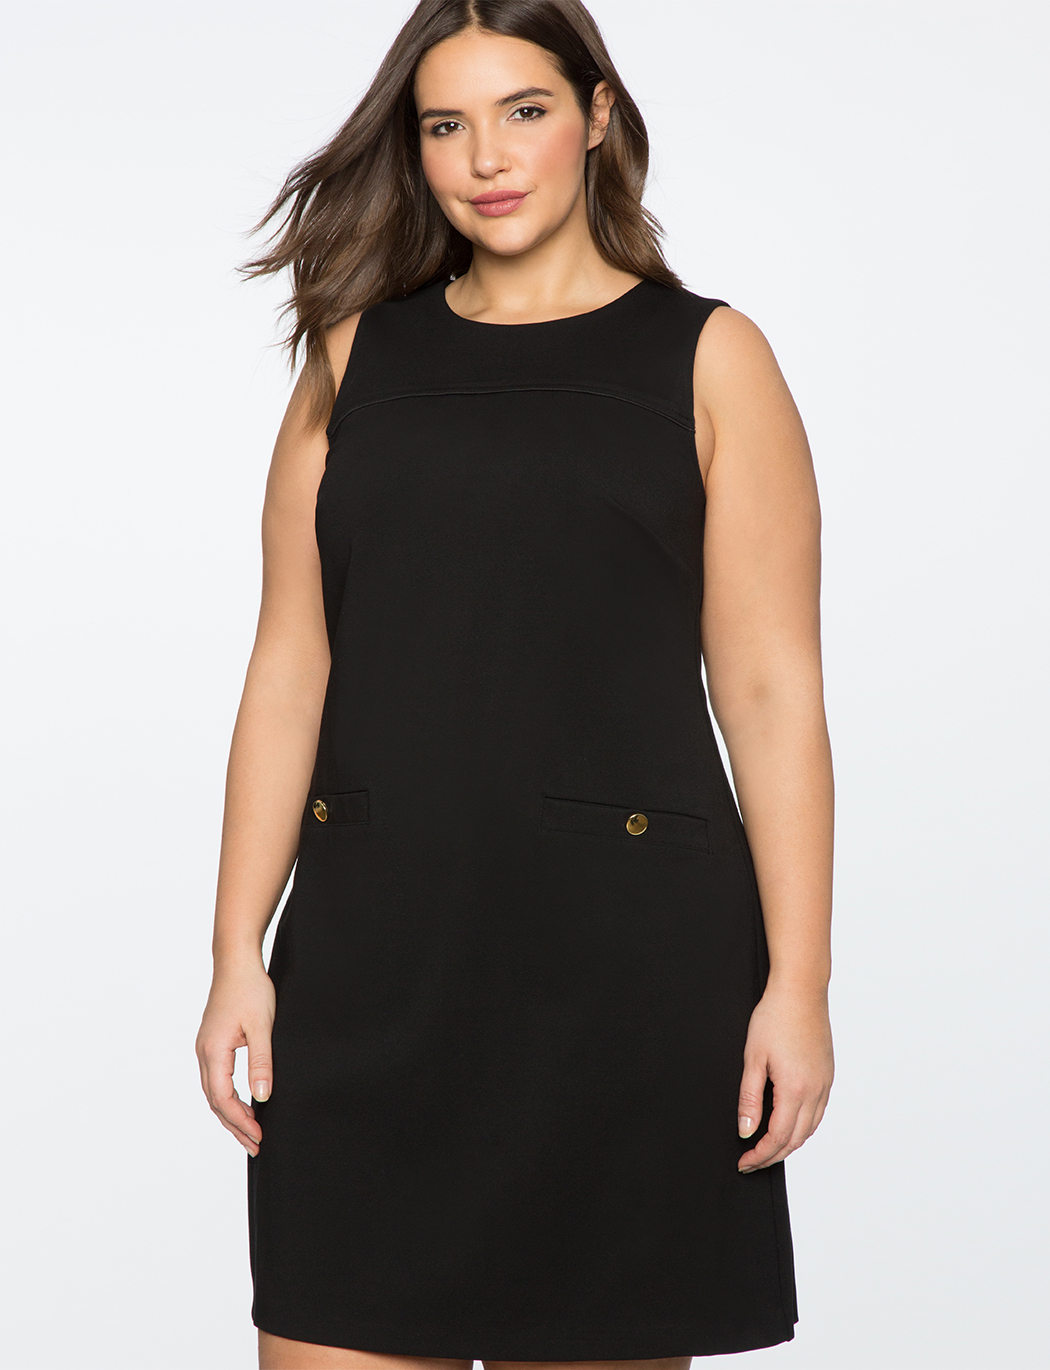 9-to-5 Sleeveless Stretch Work Dress | Women\'s Plus Size Dresses | ELOQUII